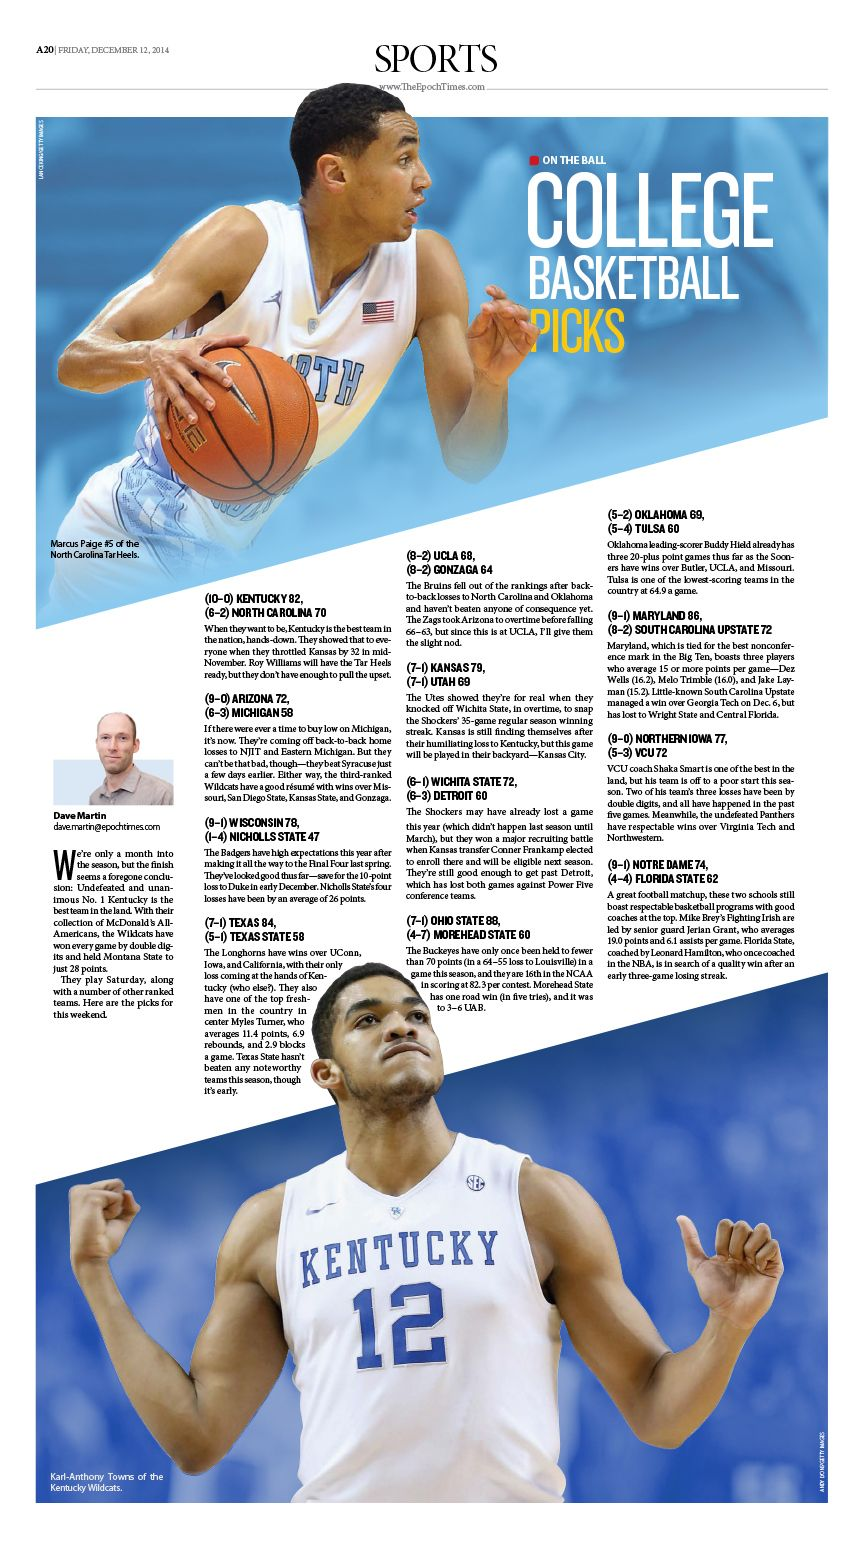 college basketball picks epoch times newspaper editorialdesign college basketball picks 65372epoch times newspaper editorialdesign graphicdesign